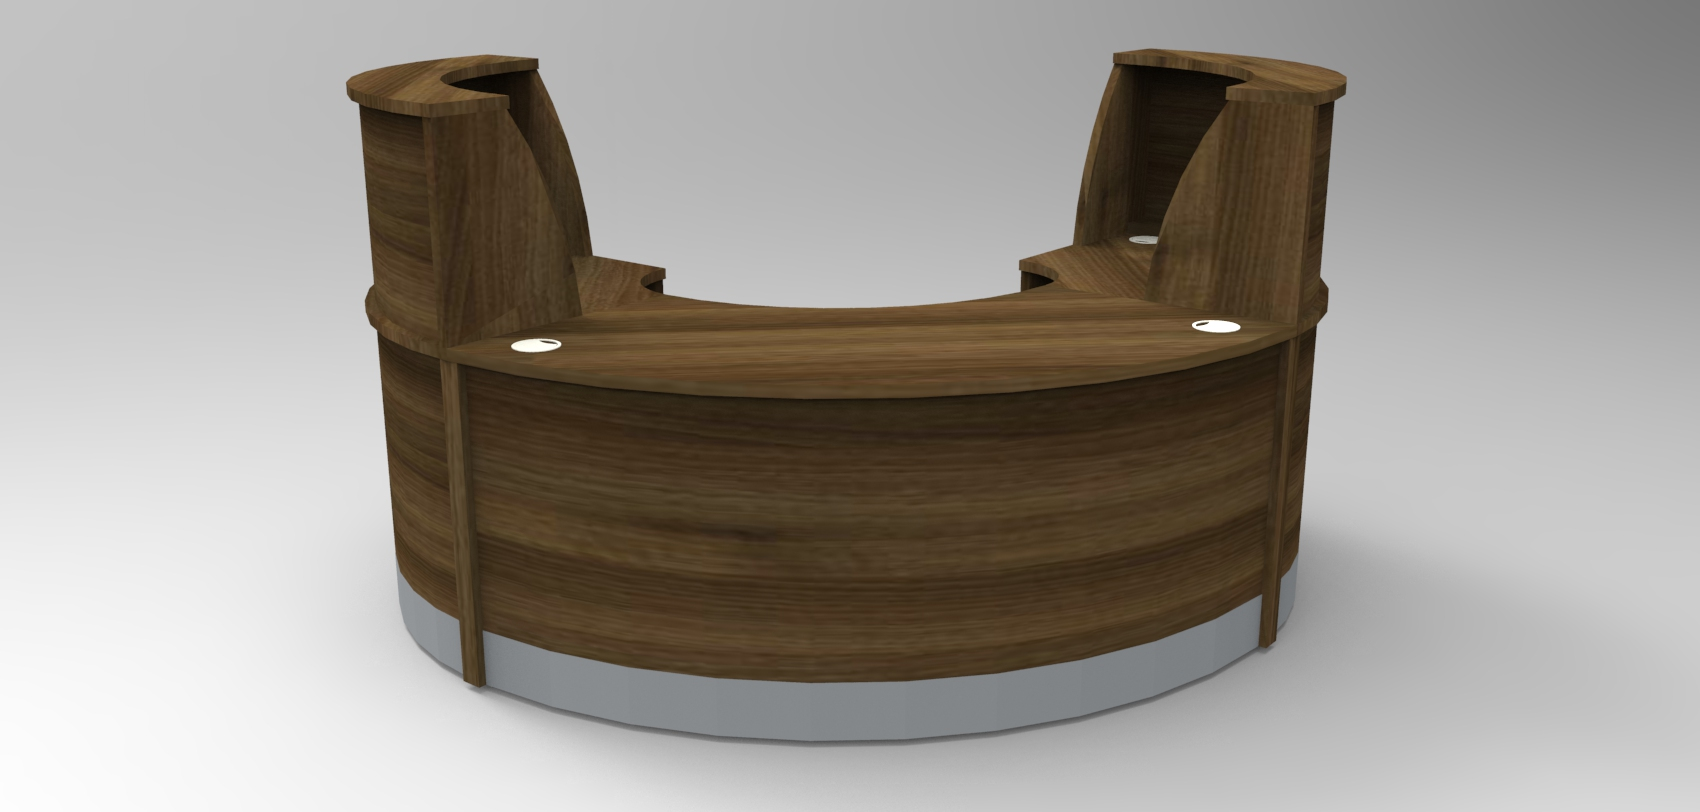 Image 27F/SP - Flex Small Polo reception desk  - Walnut (2166mm wide x 1483mm deep)